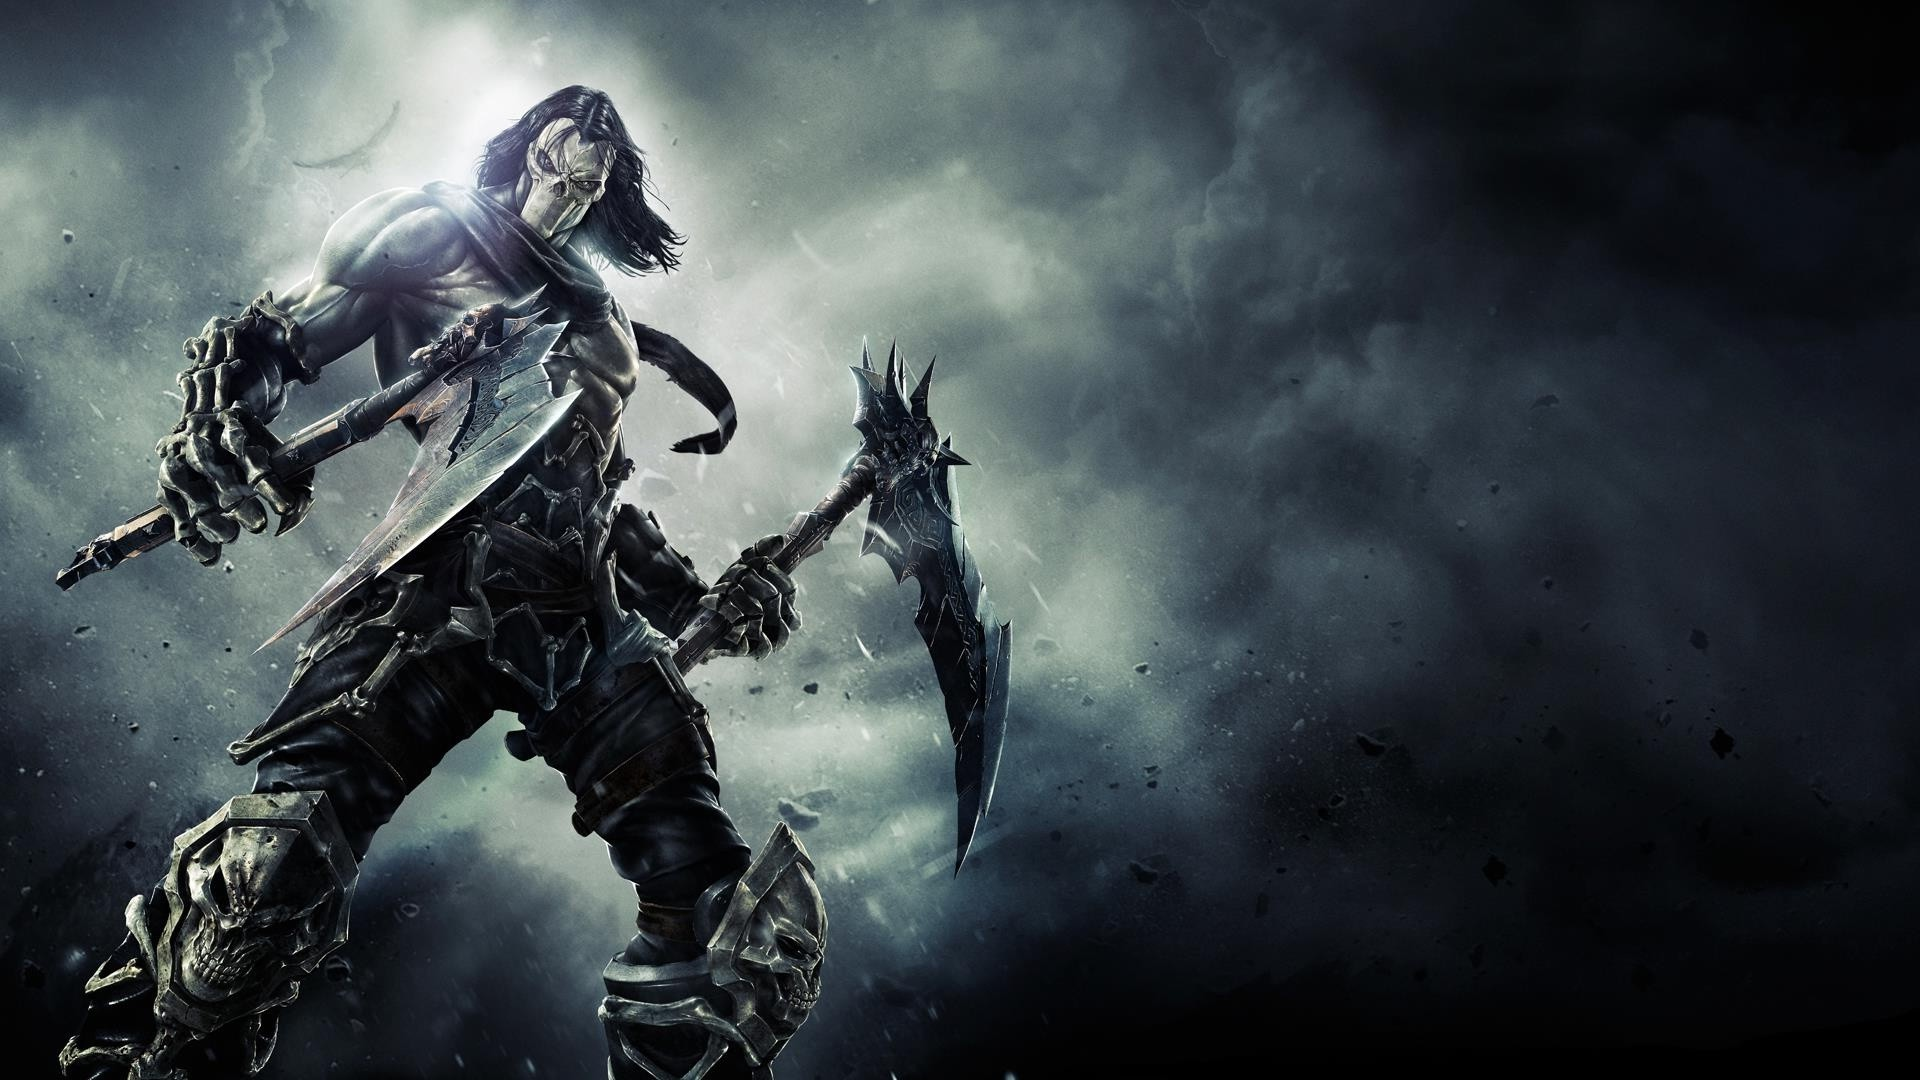 Death   Darksiders II wallpaper 3998 1920x1080